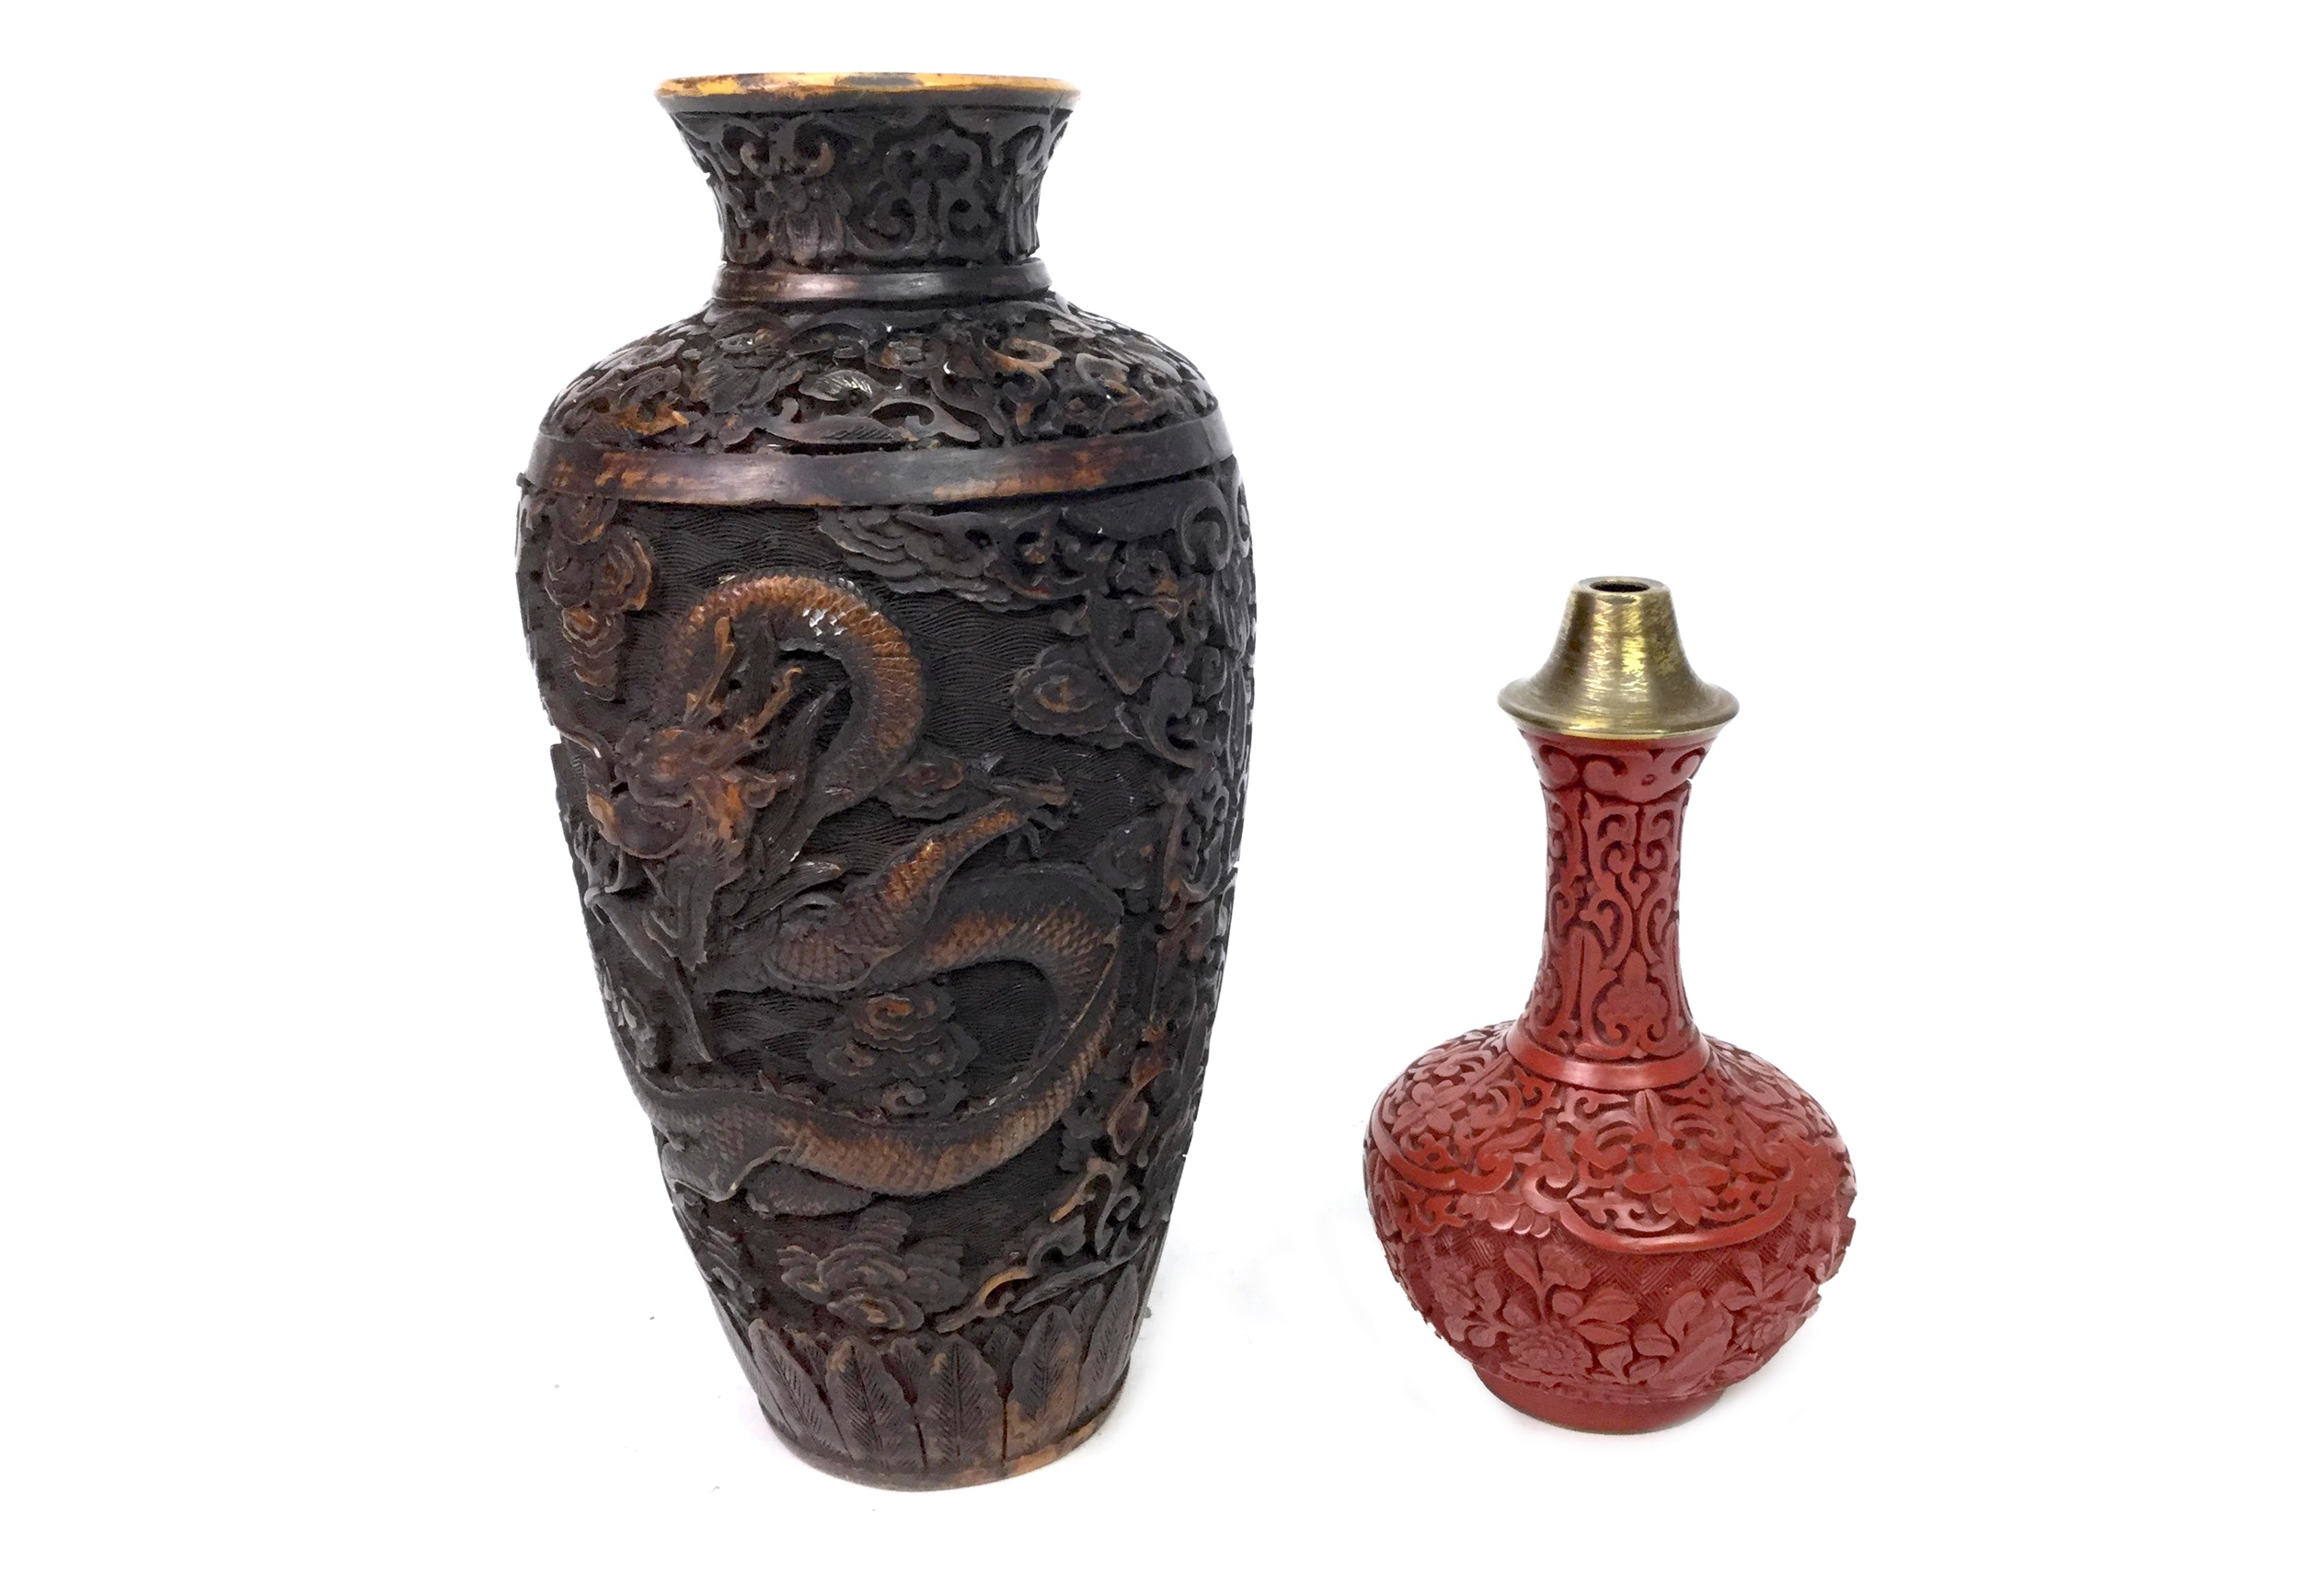 Lot 1153 - A LOT OF TWO CHINESE LACQUER VASES